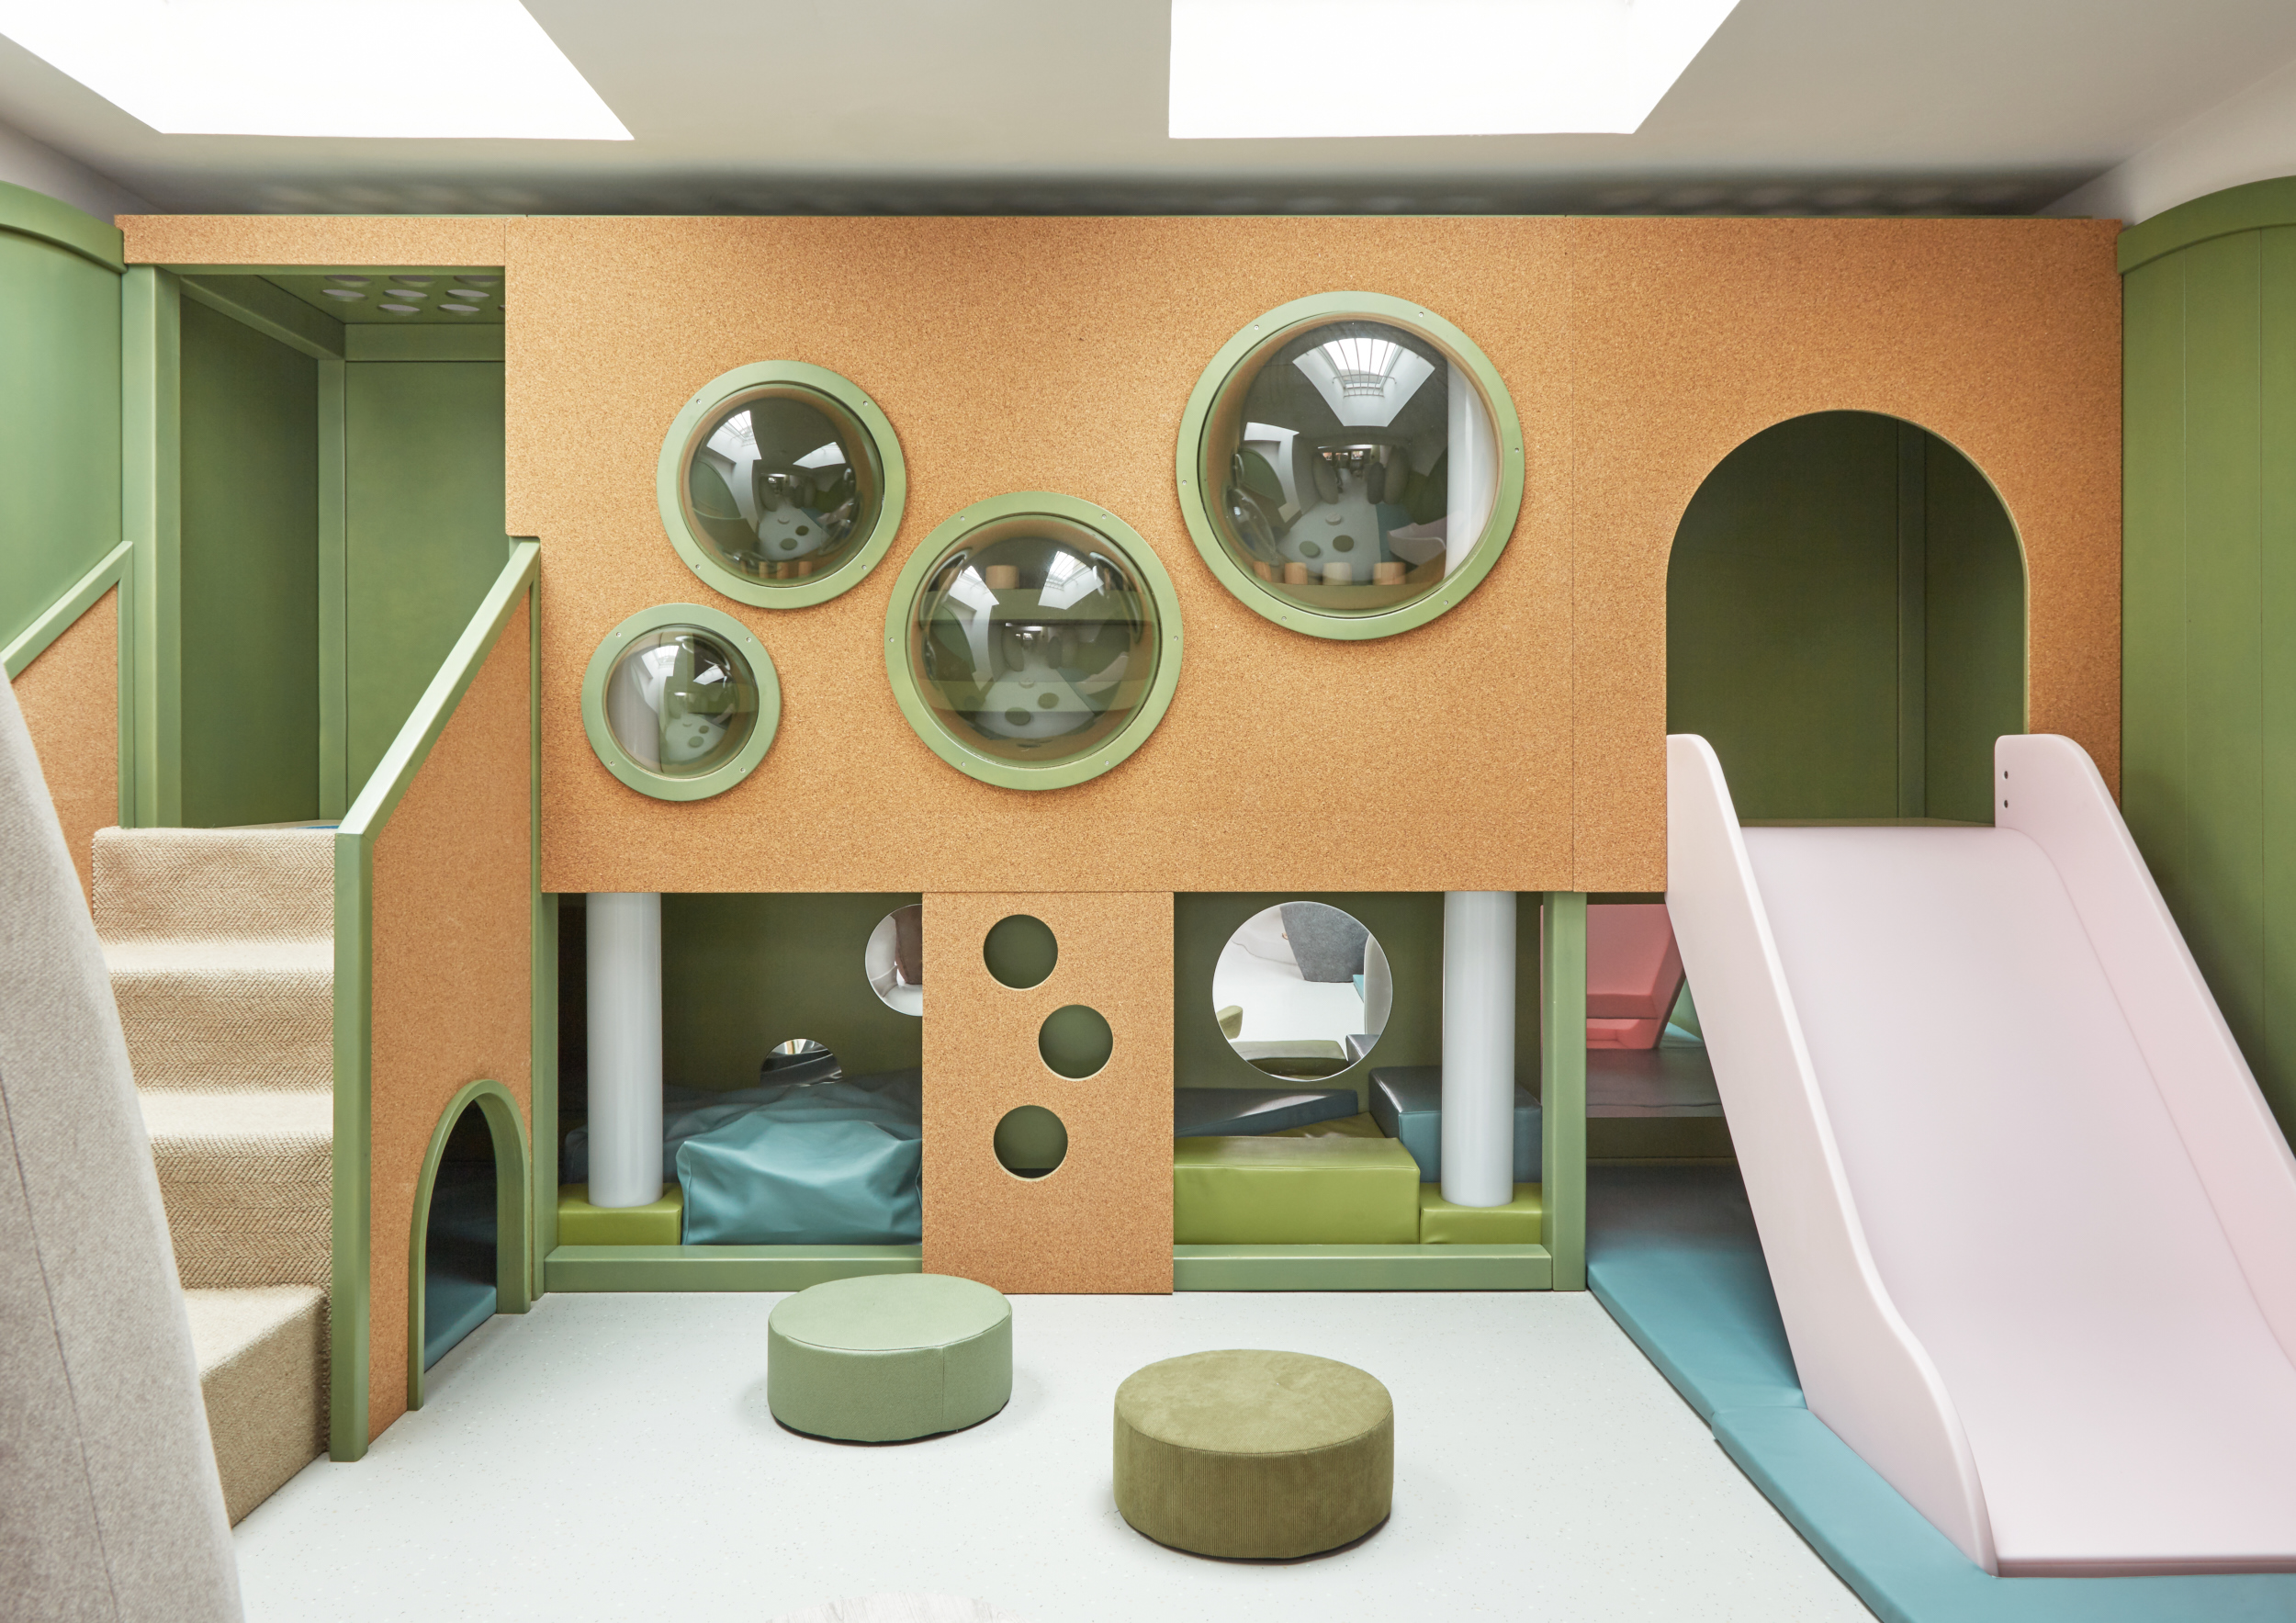 An indoor play area for children